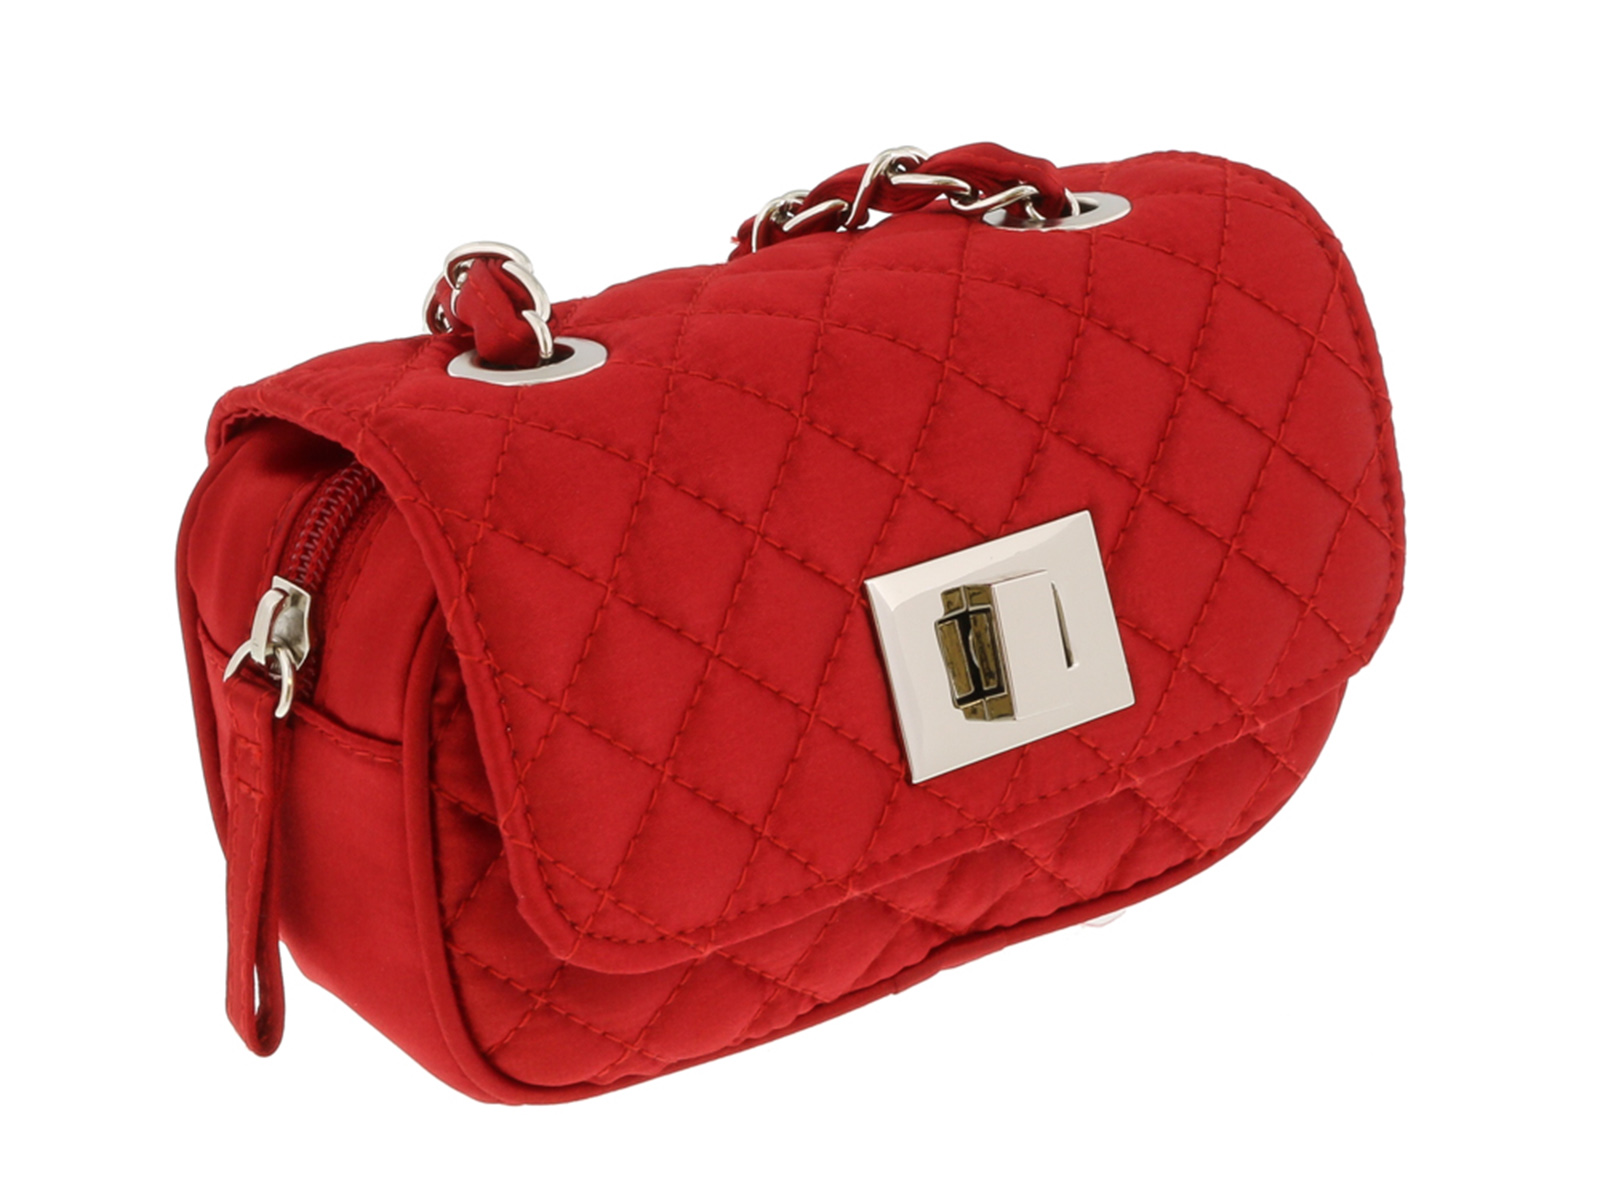 Scheilan  Red Satin Quilted Boxy Crossbody Bag